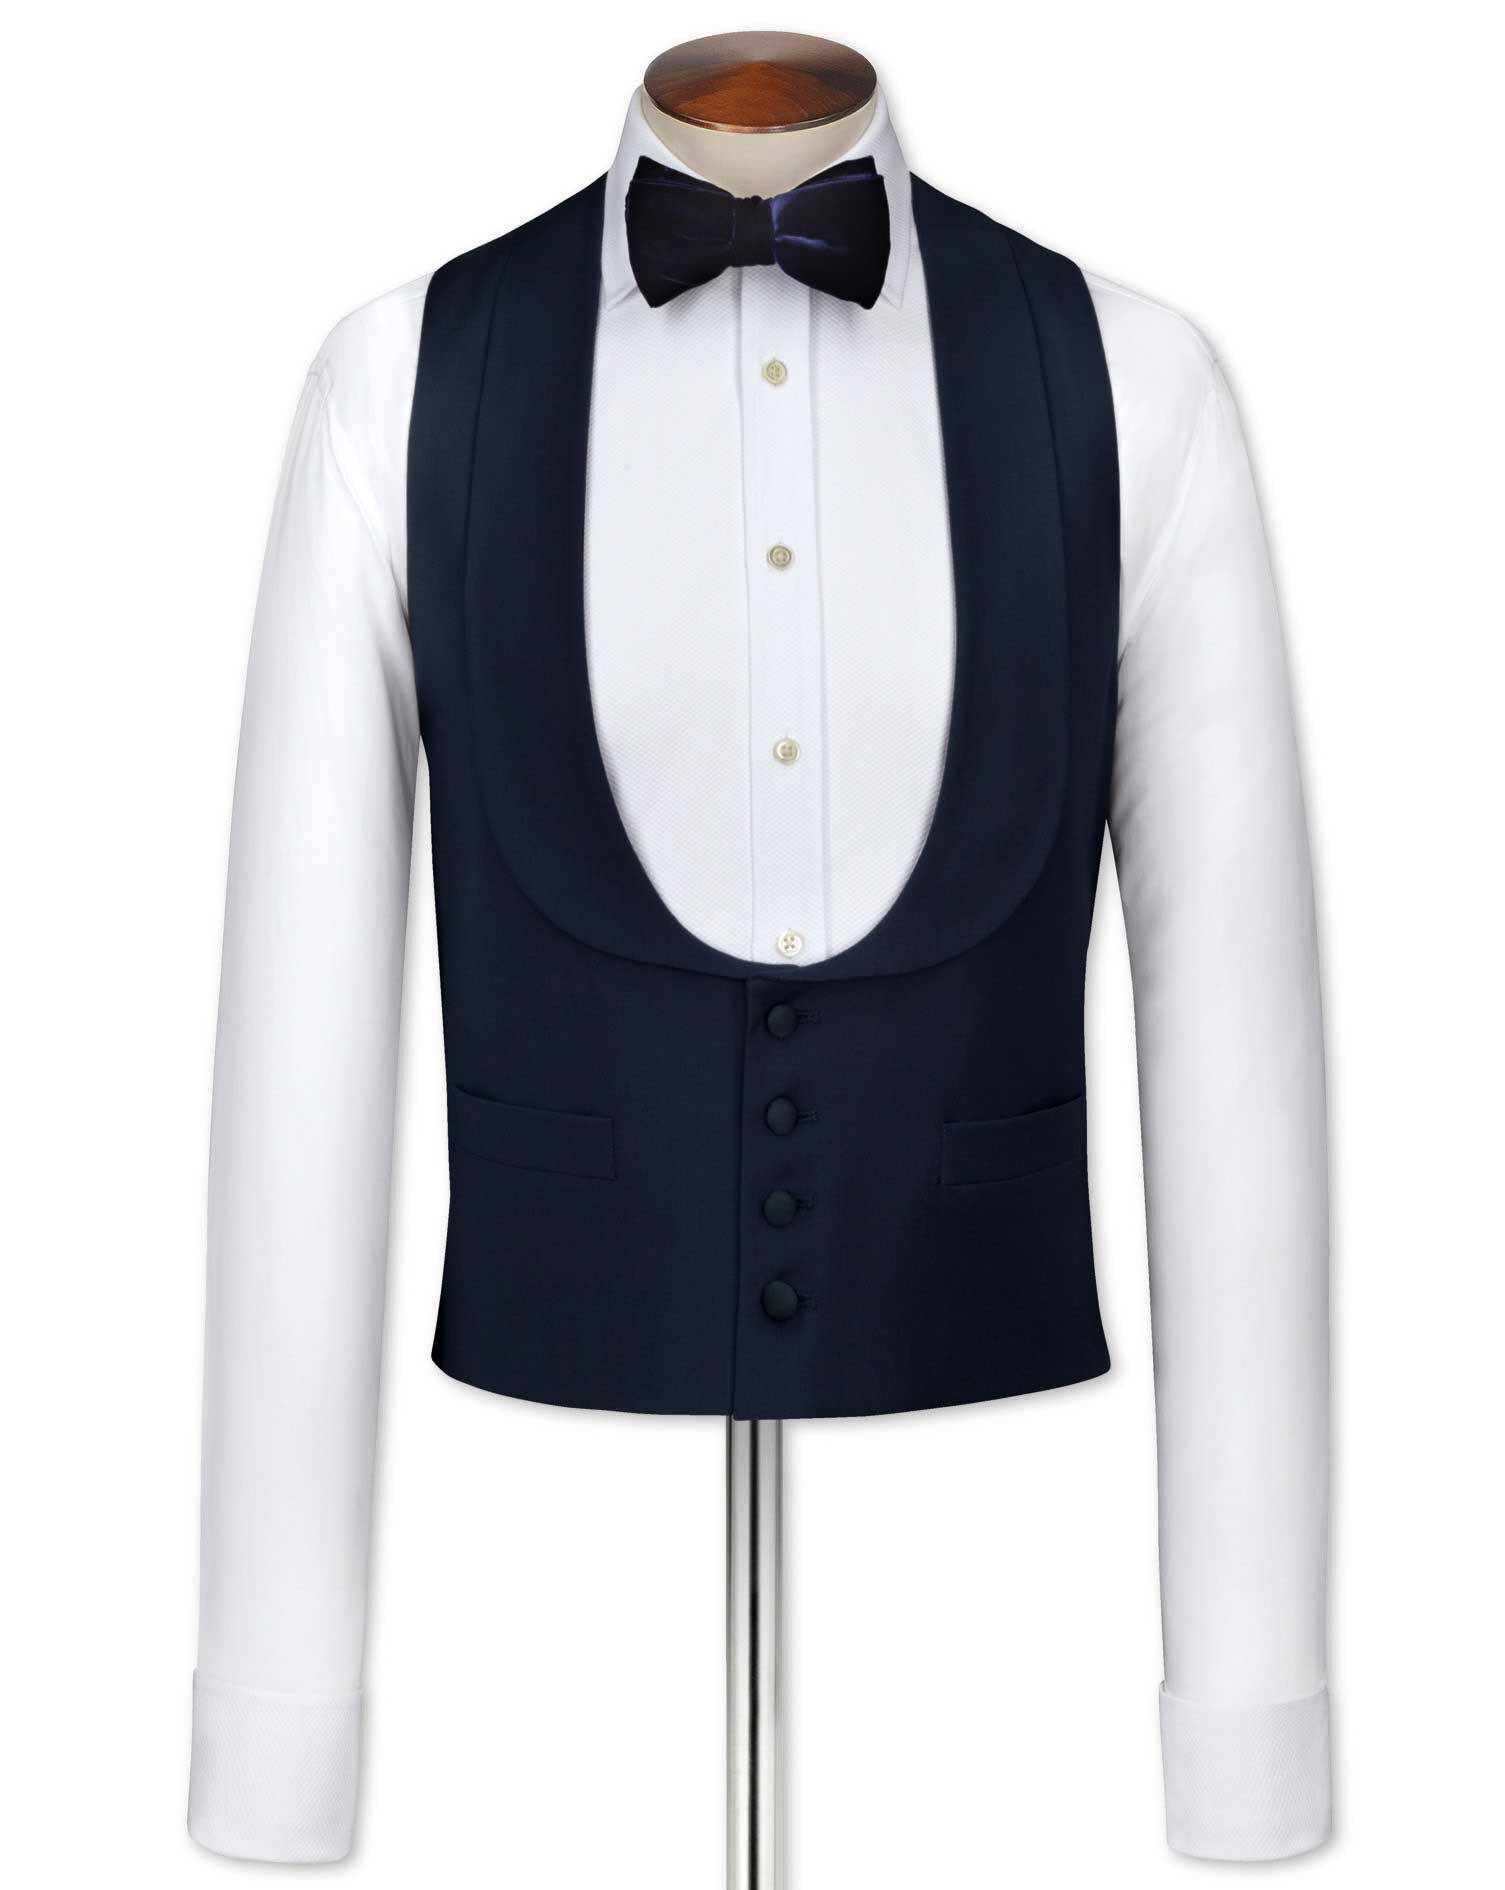 Victorian Men's Clothing Charles Tyrwhitt Navy tuxedo waistcoat £70.00 AT vintagedancer.com